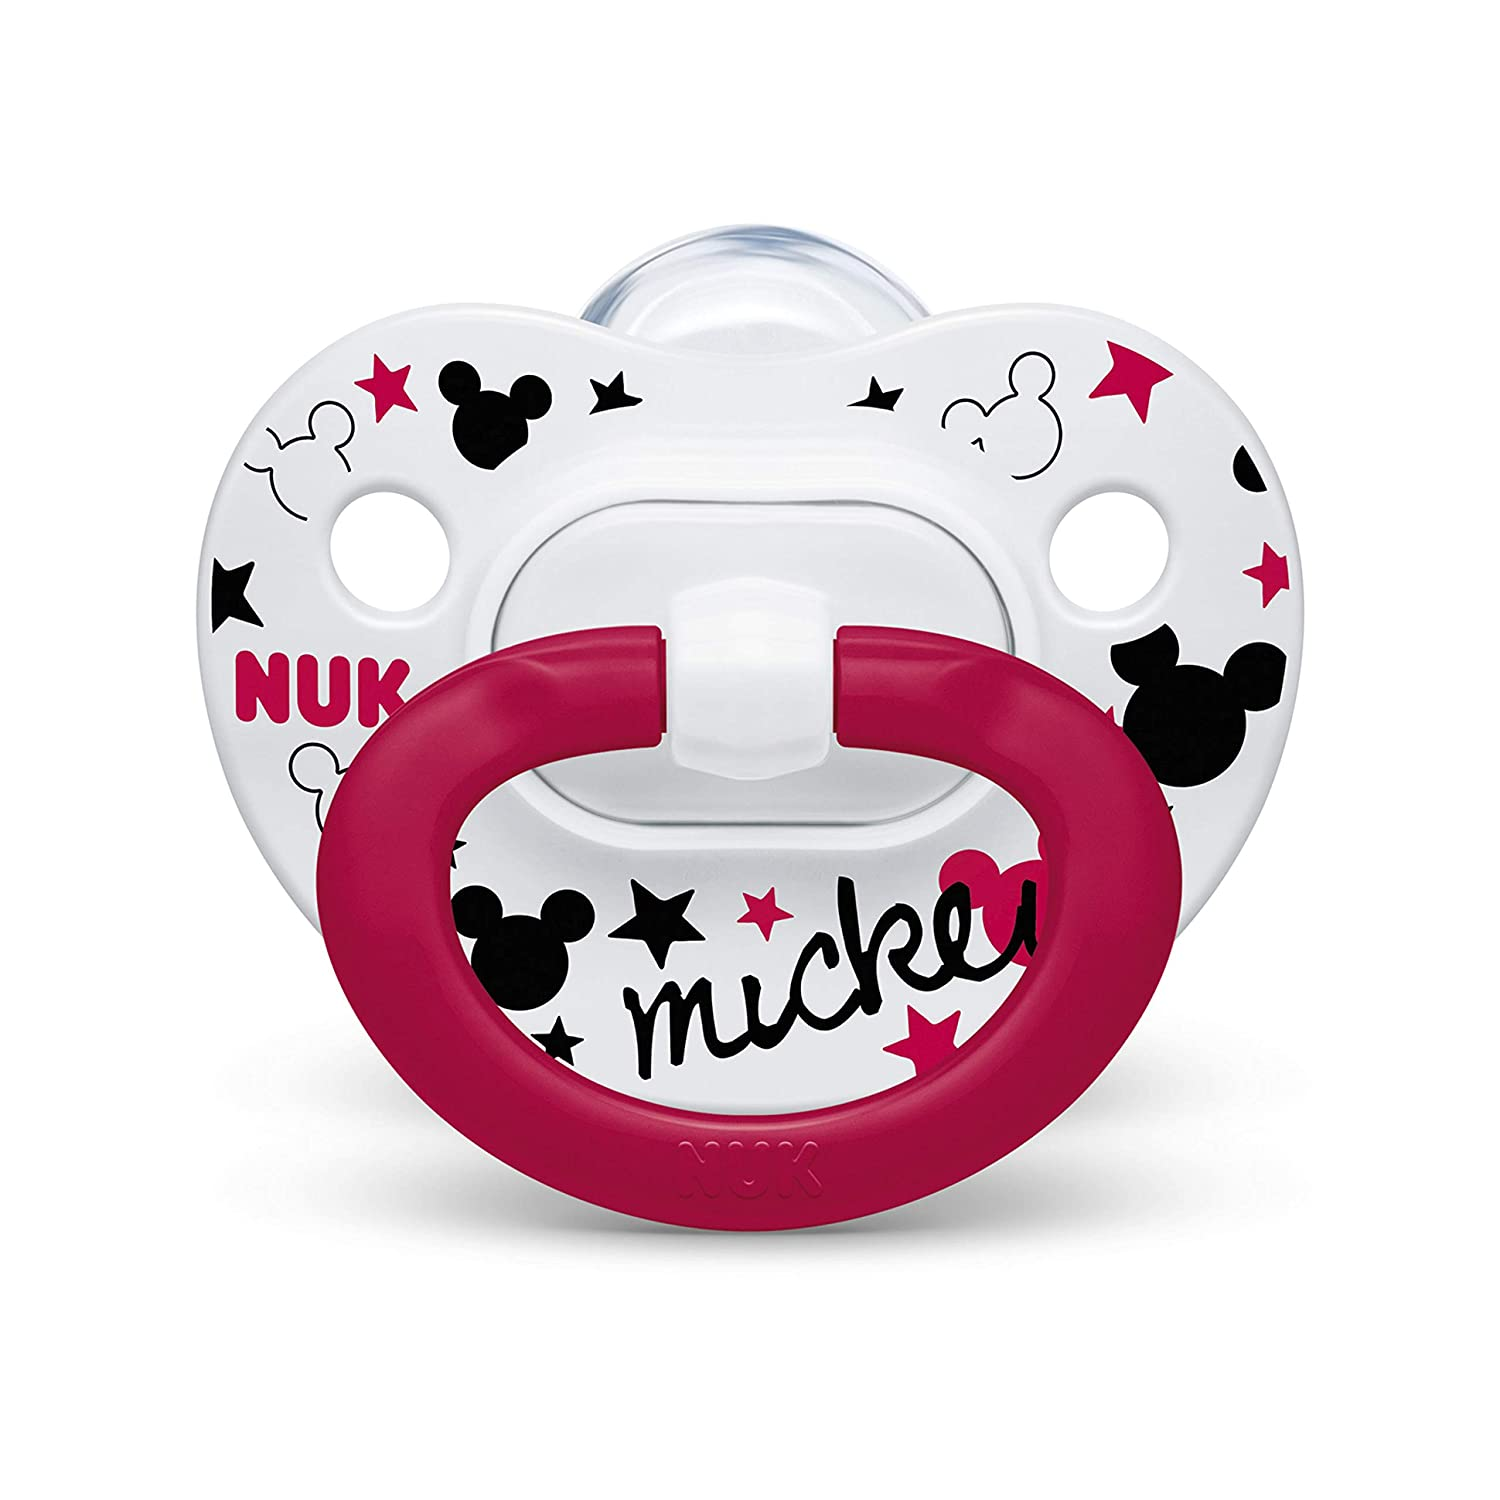 Amazon.com: NUK - Chupetes ortopédicos de Disney Minnie ...